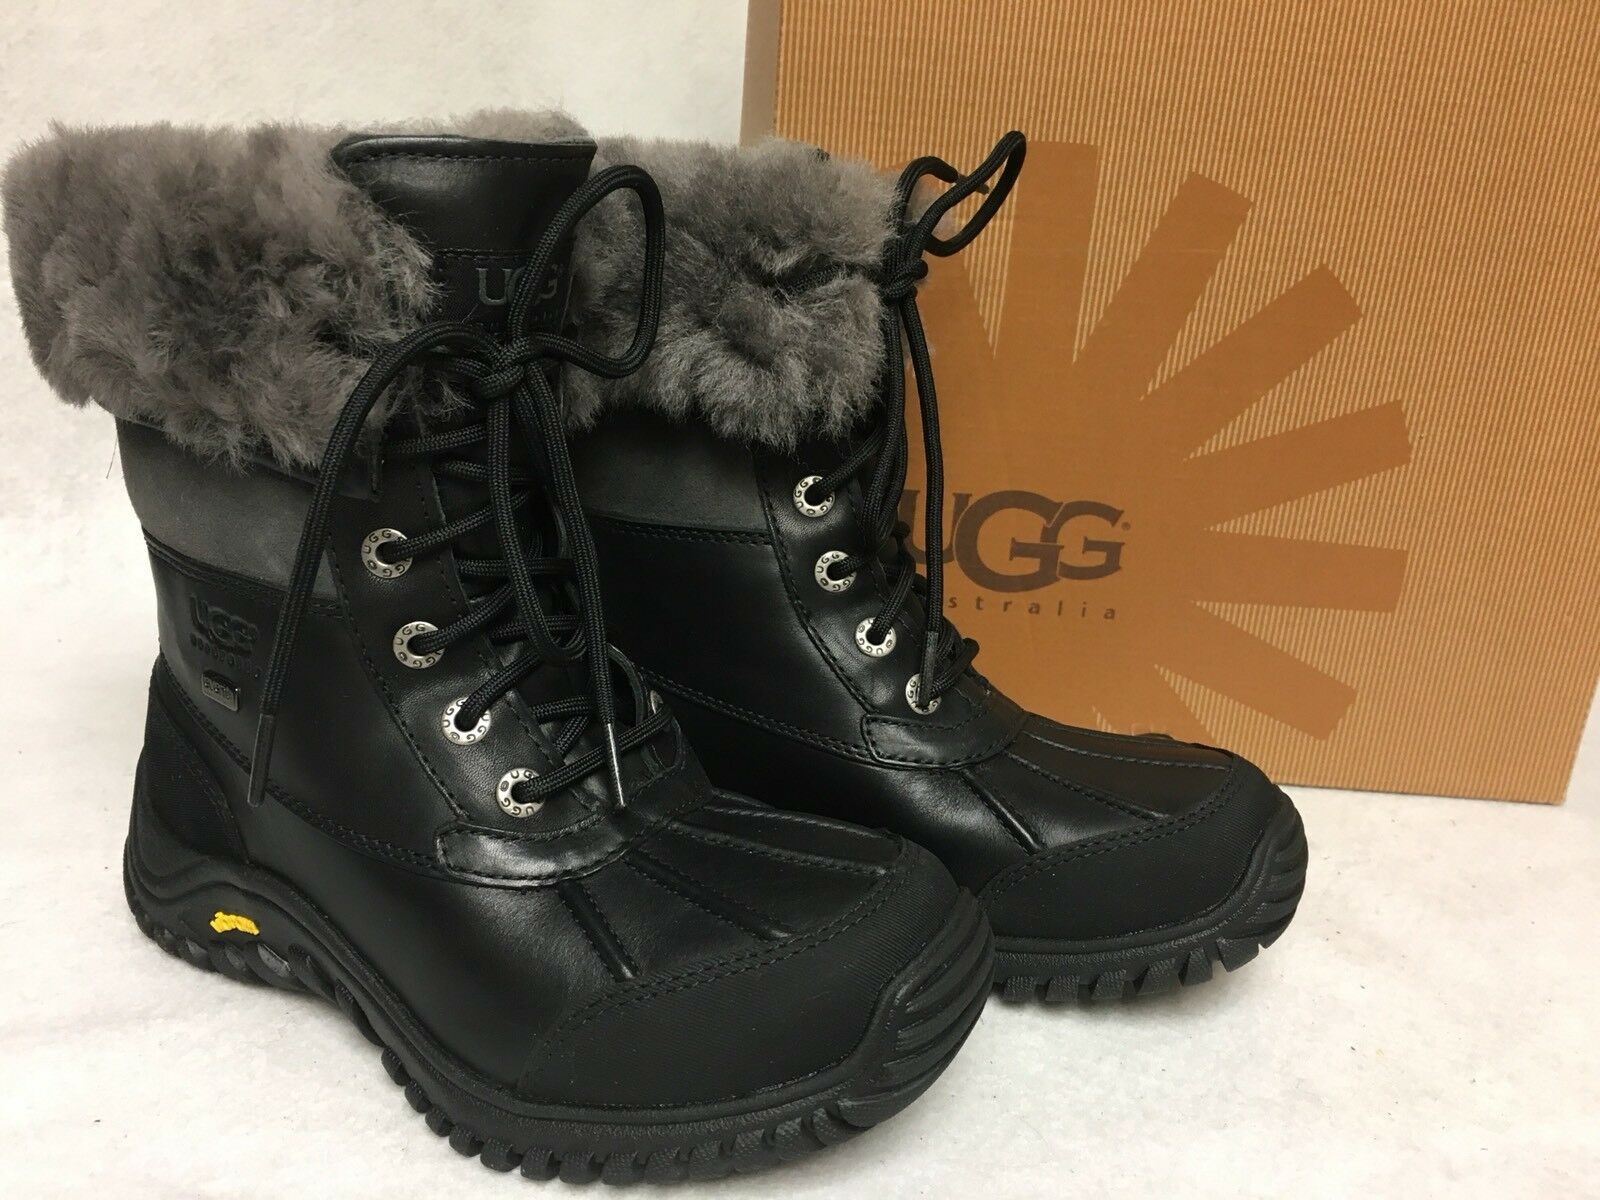 UGG AUSTRALIA ADIRONDACK II BOOTS BLACK / Gray Grey 1906 Women's Shoes box sizes 1 of 12Only 4 available ...